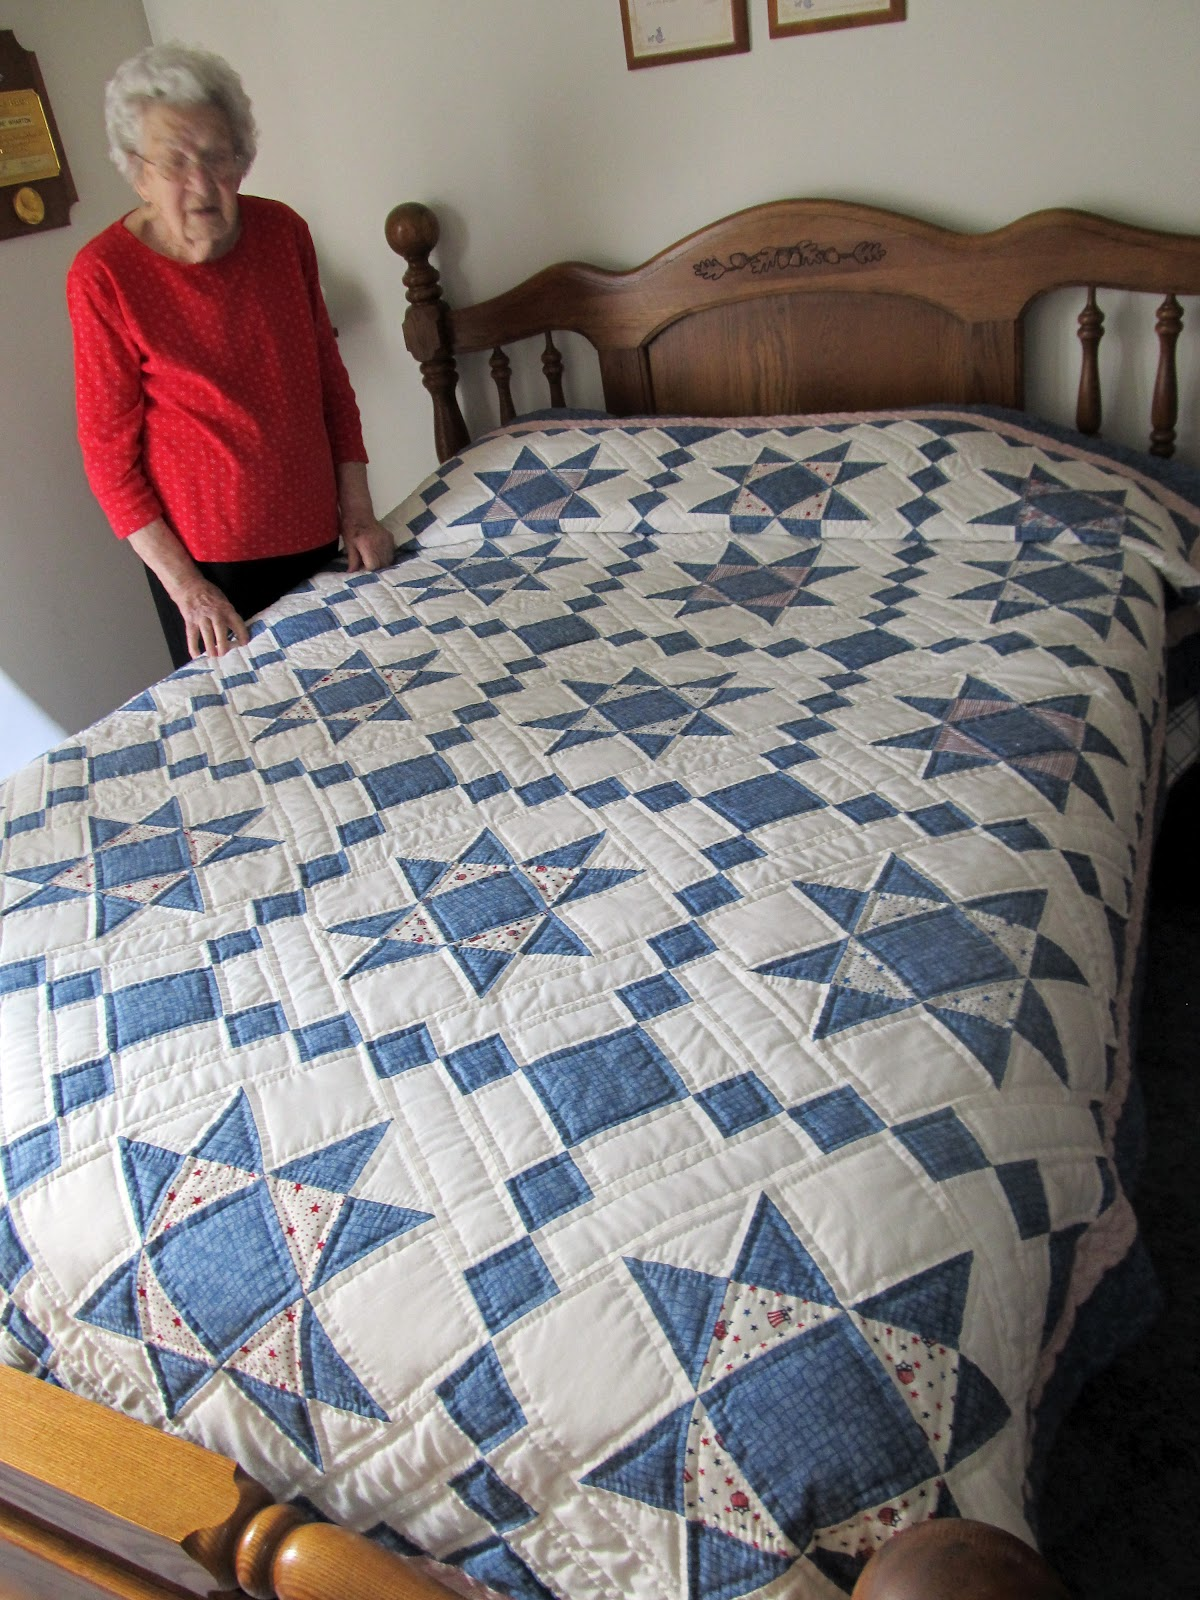 Image result for grandma with quilt